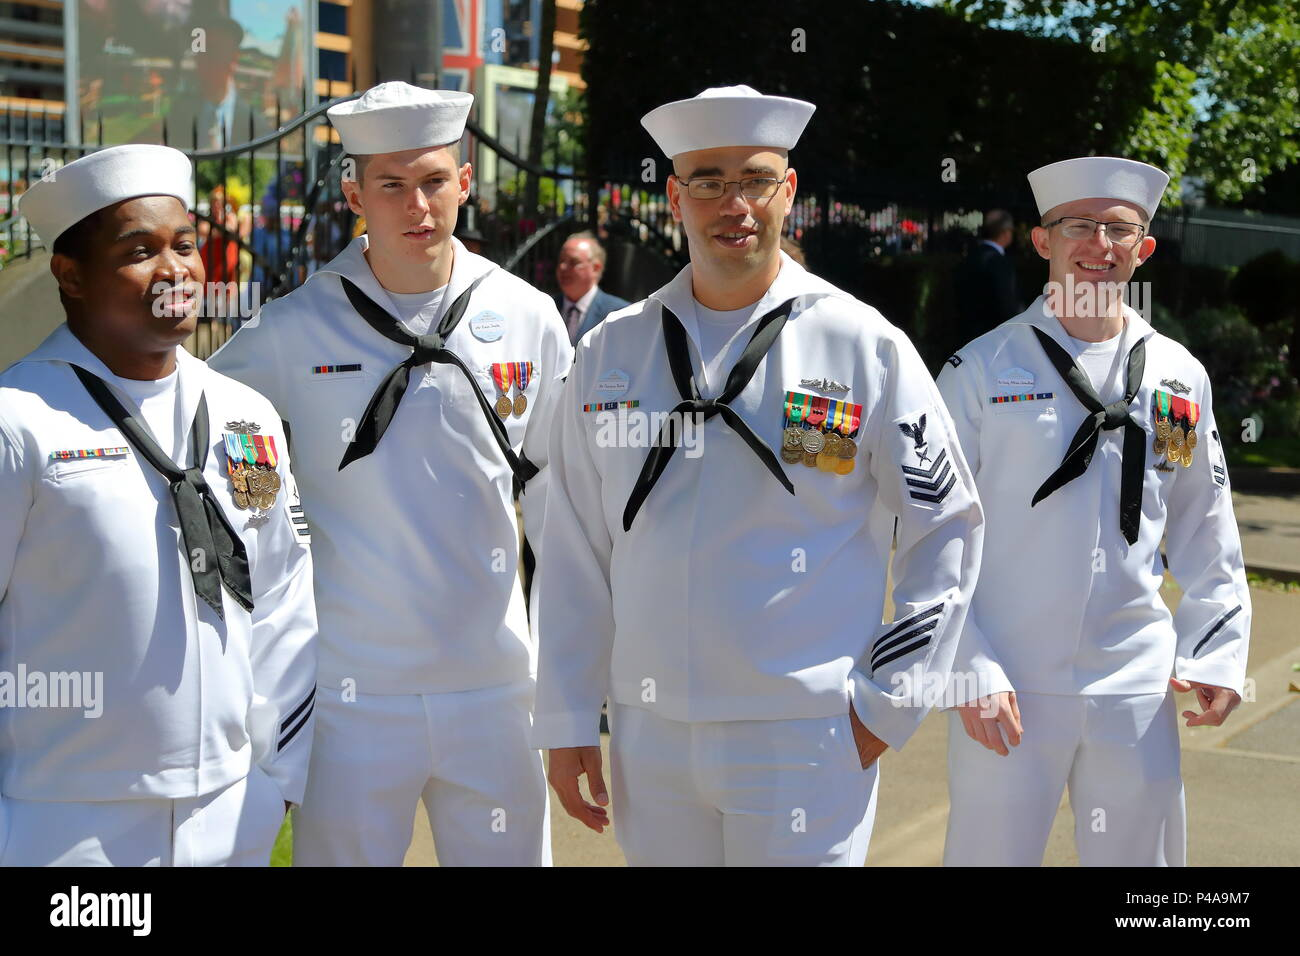 Ascot, UK. 21st June 2018. Four Sailors on their Way to the Races. Credit: Uwe Deffner/Alamy Live News - Stock Image